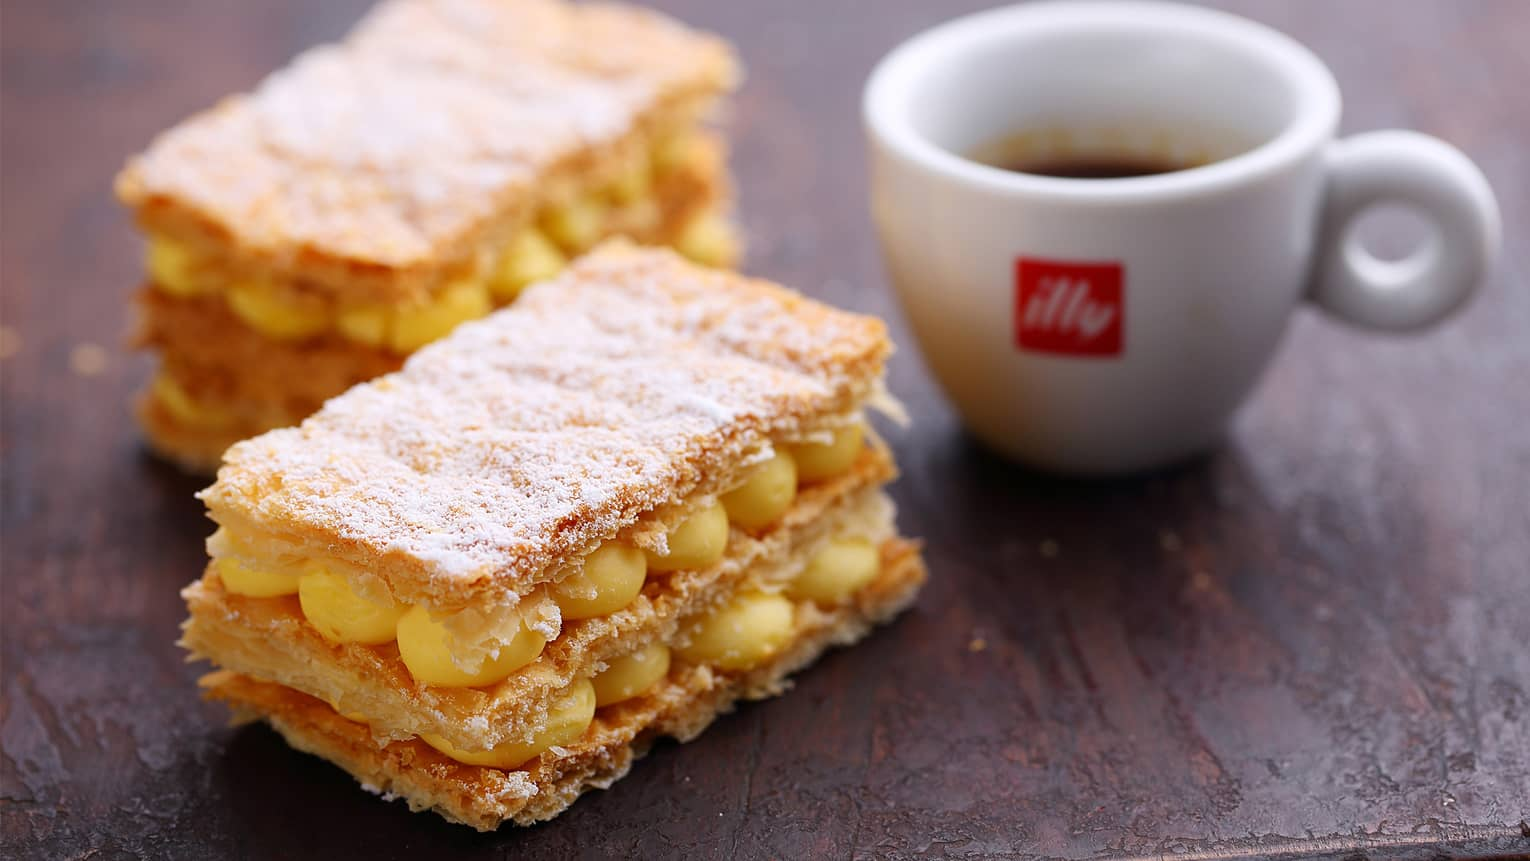 Two Millefoglie bars of crispy puff pastry and custard filling beside small Illy espresso mug